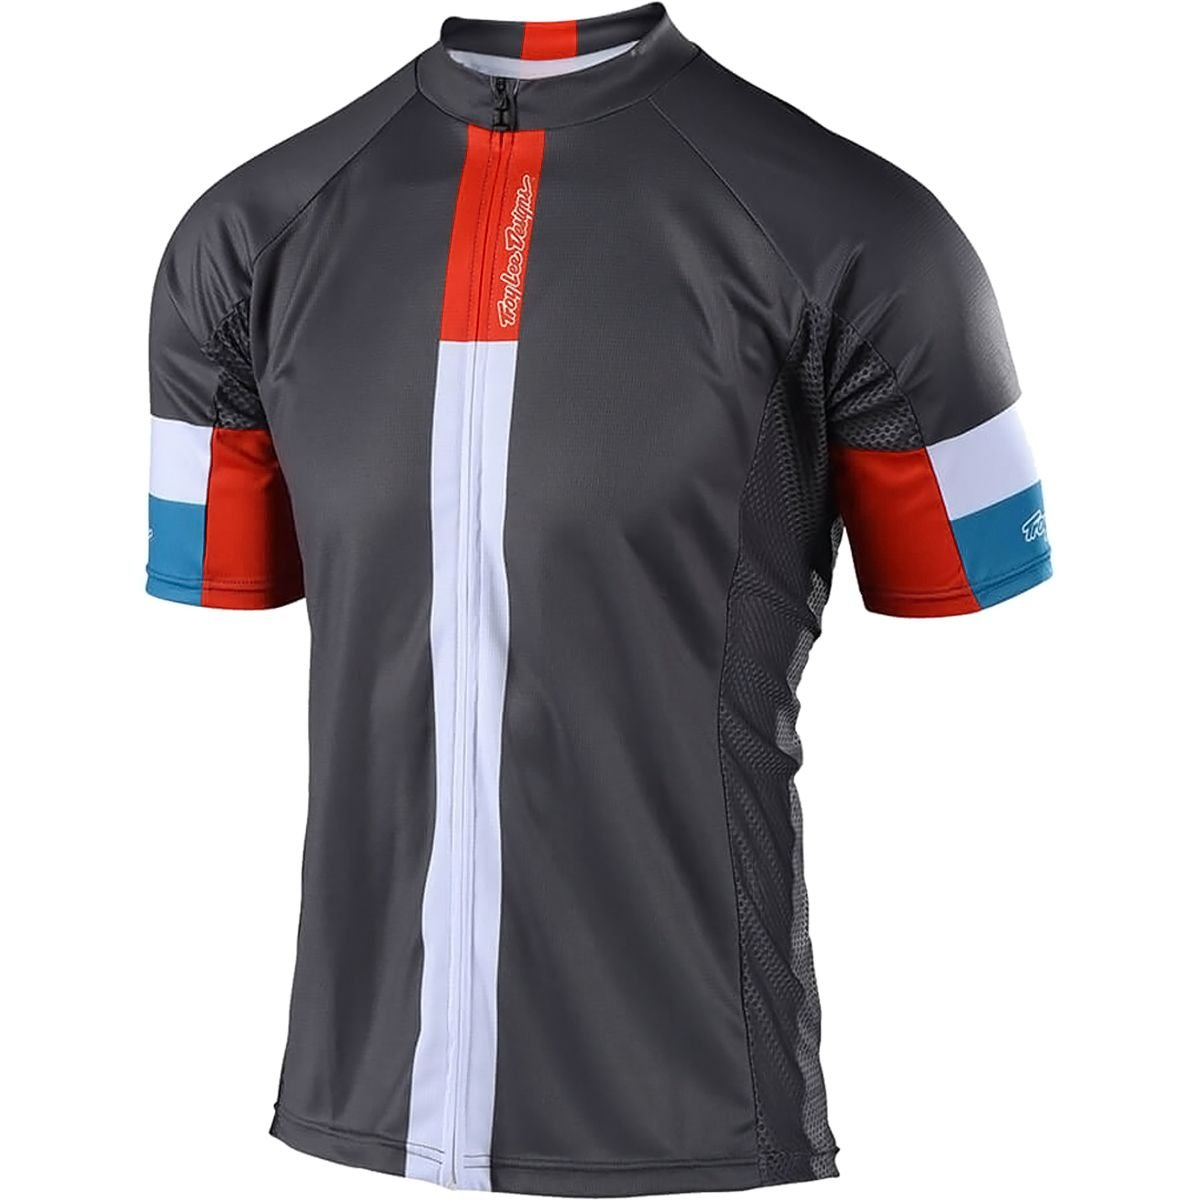 2018 Troy Lee Designs Ace 2.0 Jersey-Gray-S